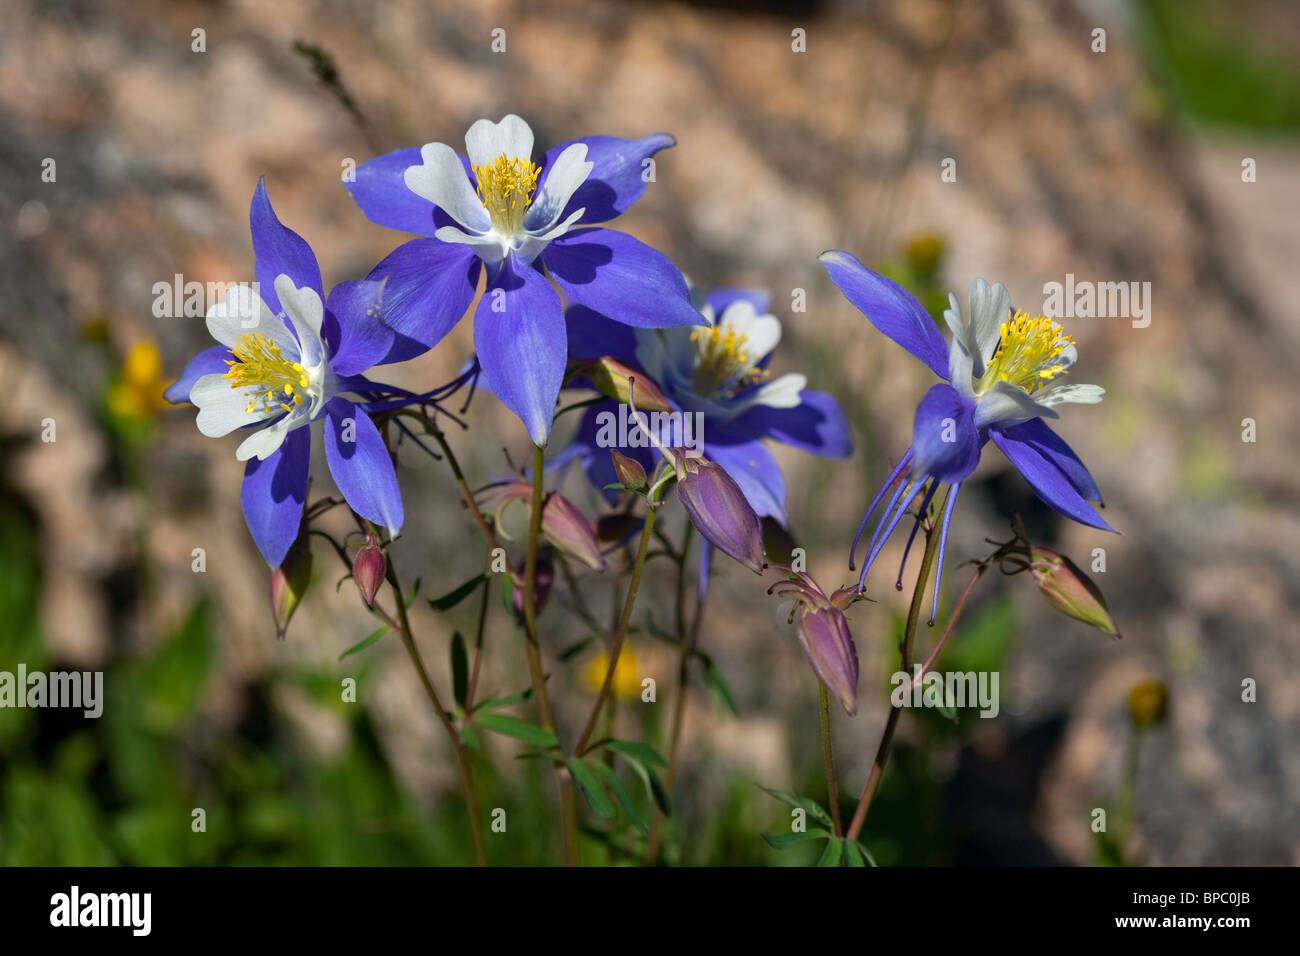 colorado state flower, vibrant blue columbine flowers next to the, Beautiful flower